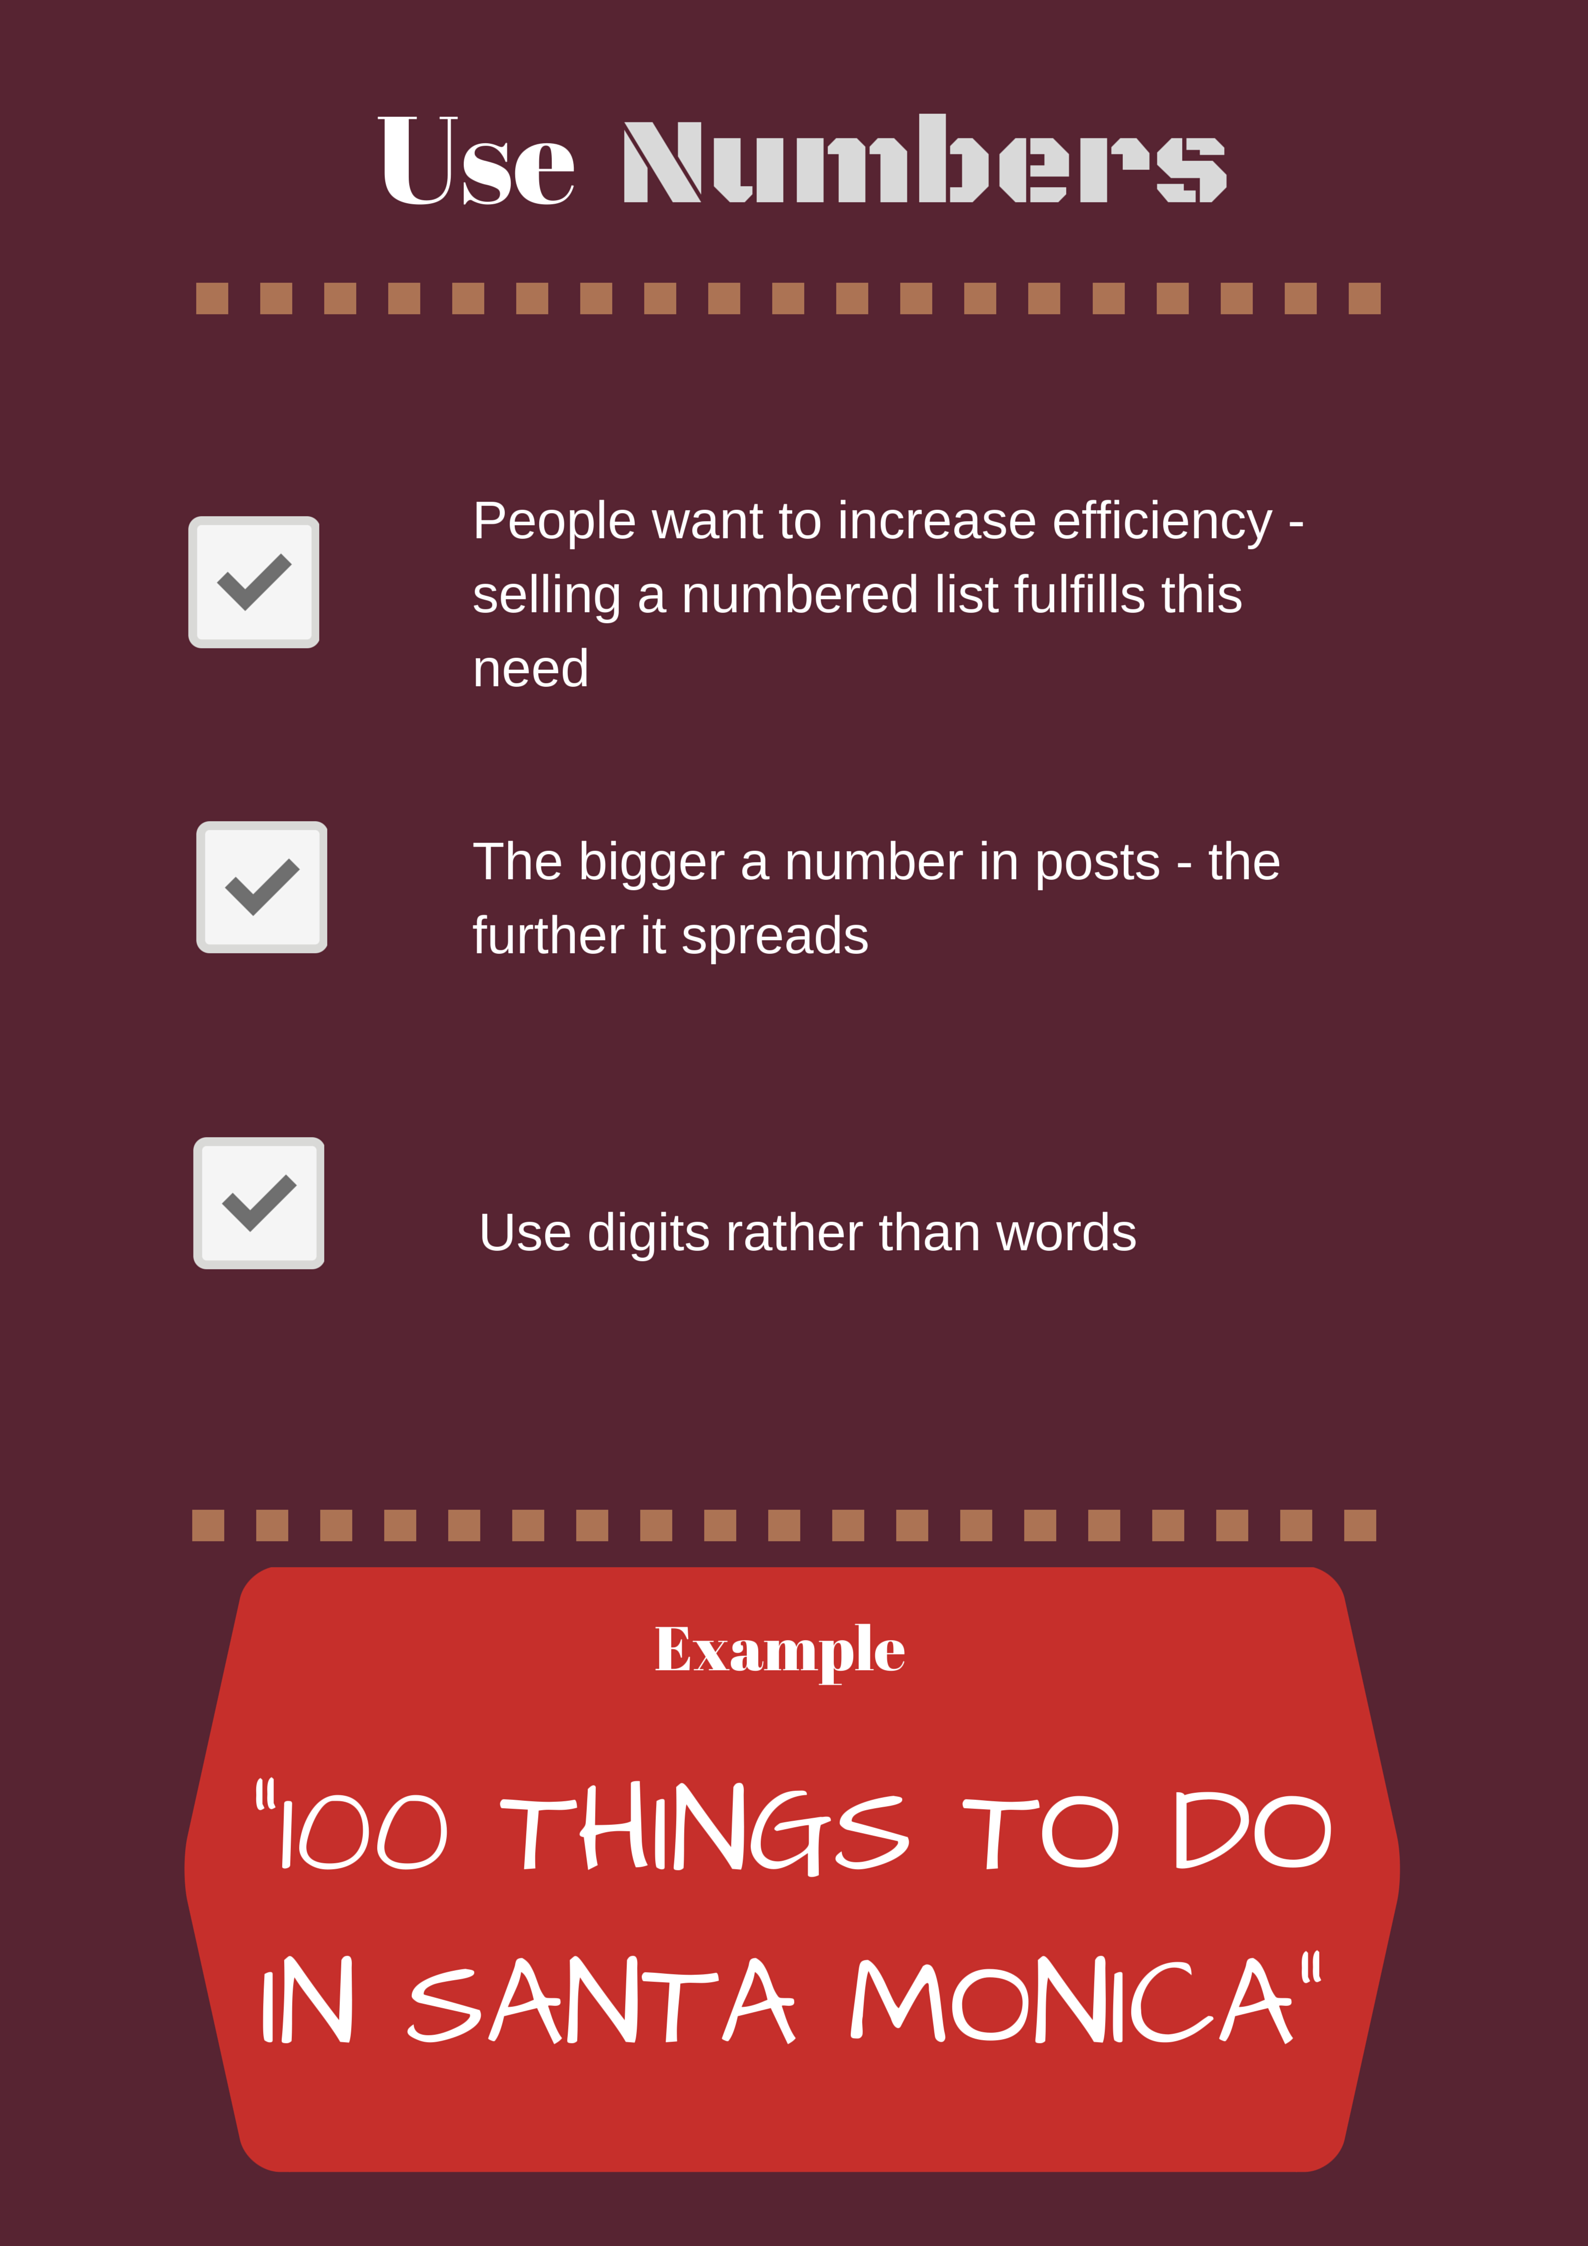 Use Numbers